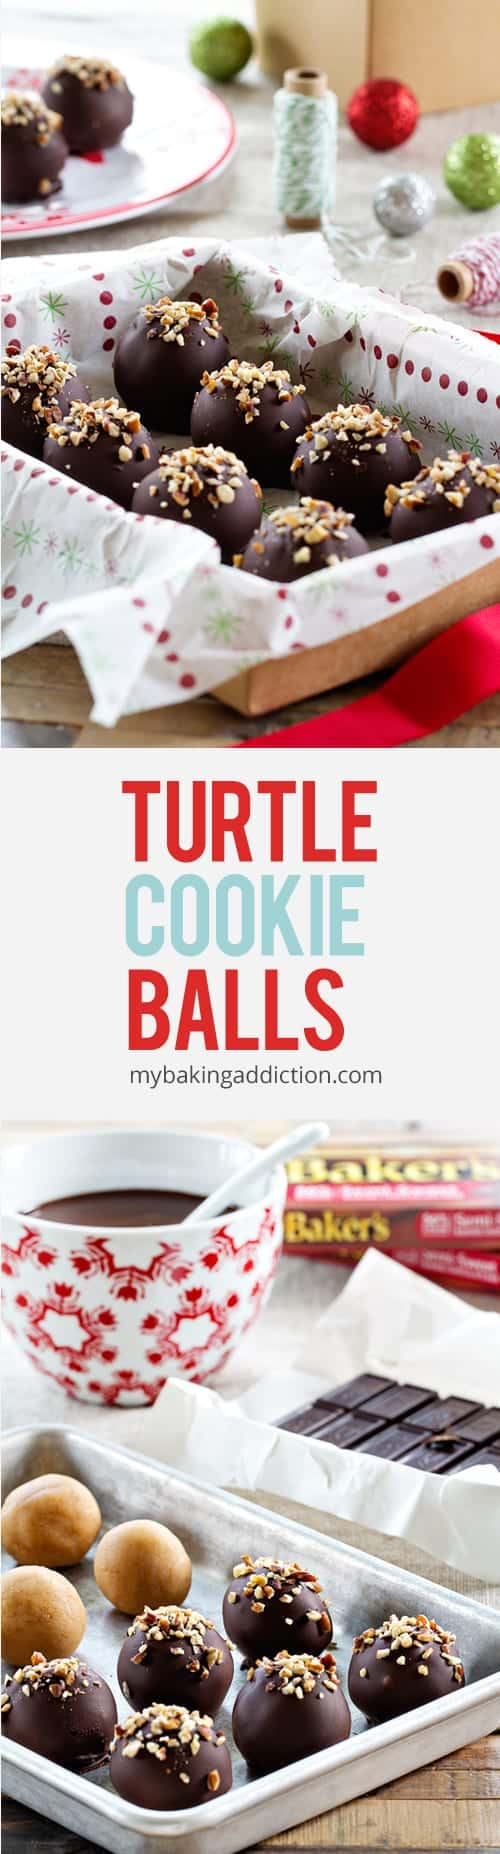 Turtle Cookies Balls have only five ingredients and three steps. So perfect for the holidays!